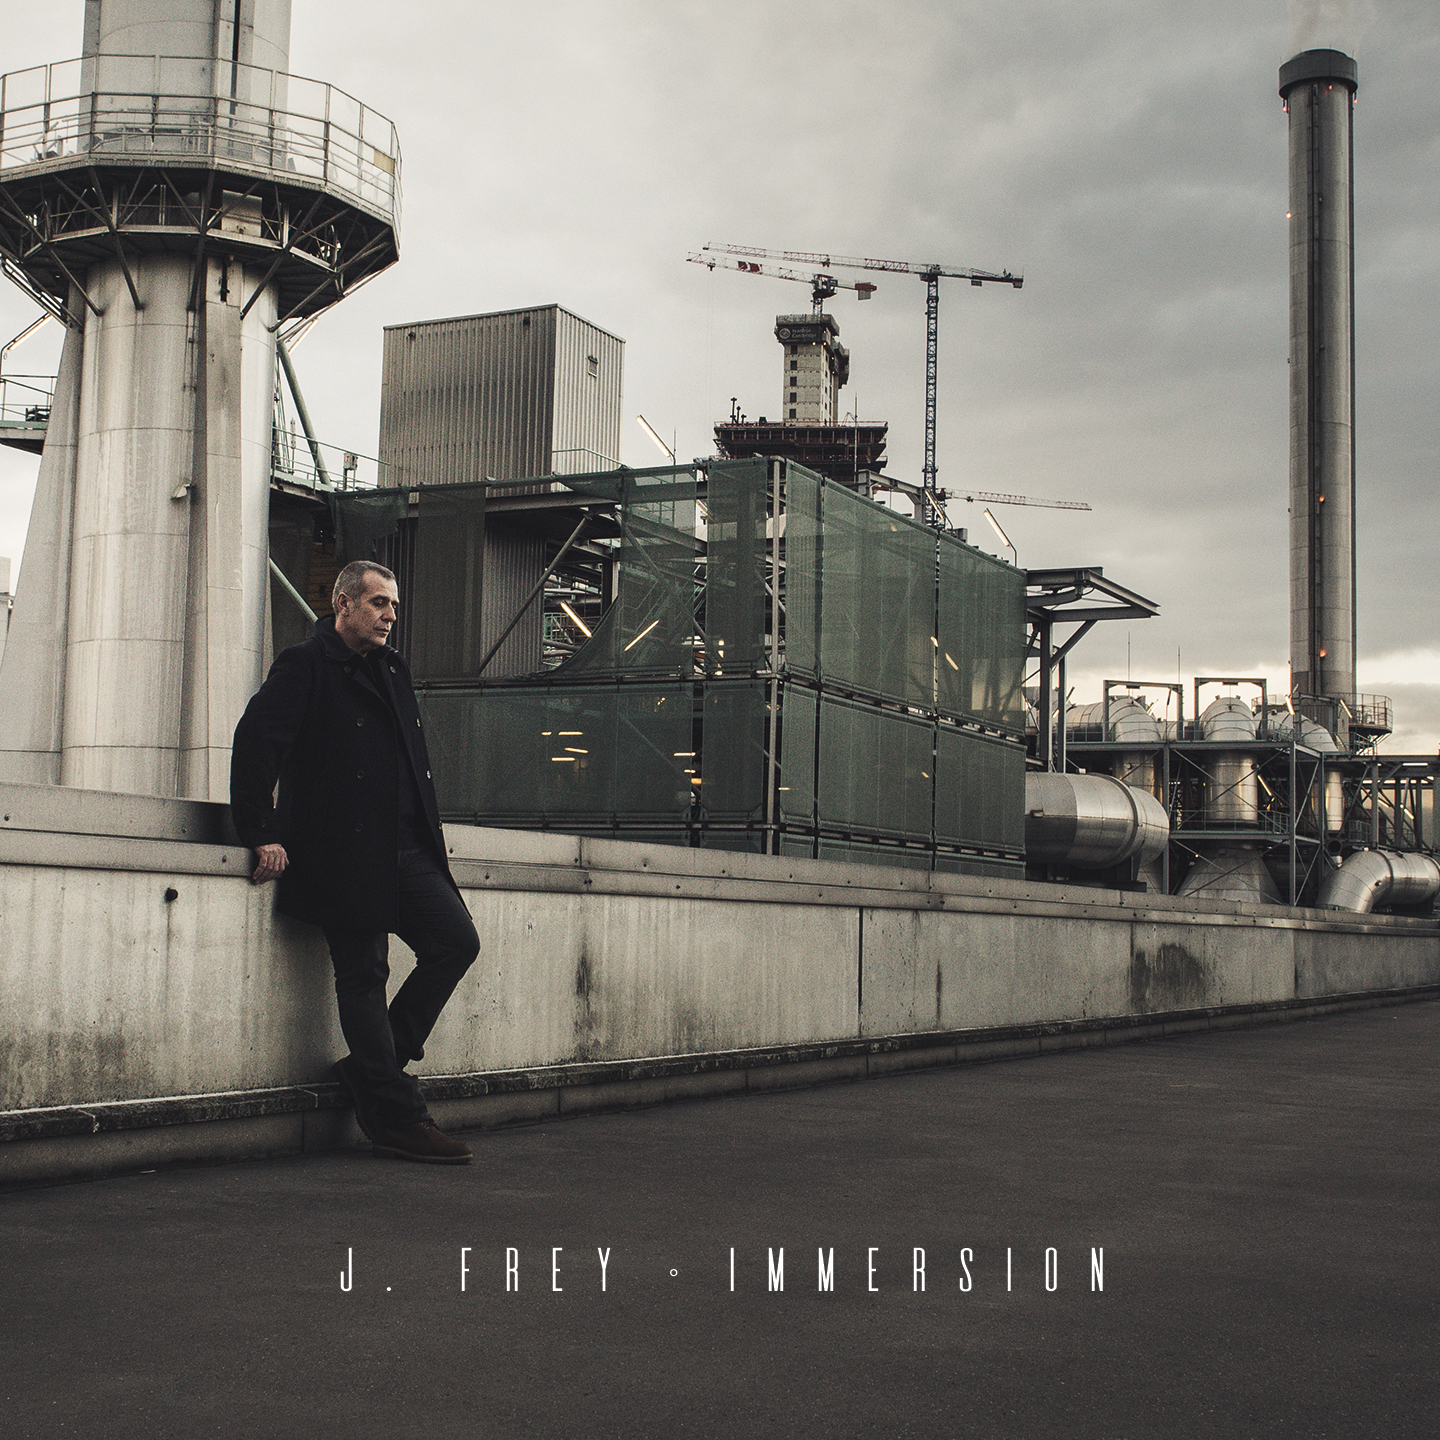 J. Frey- Immersion